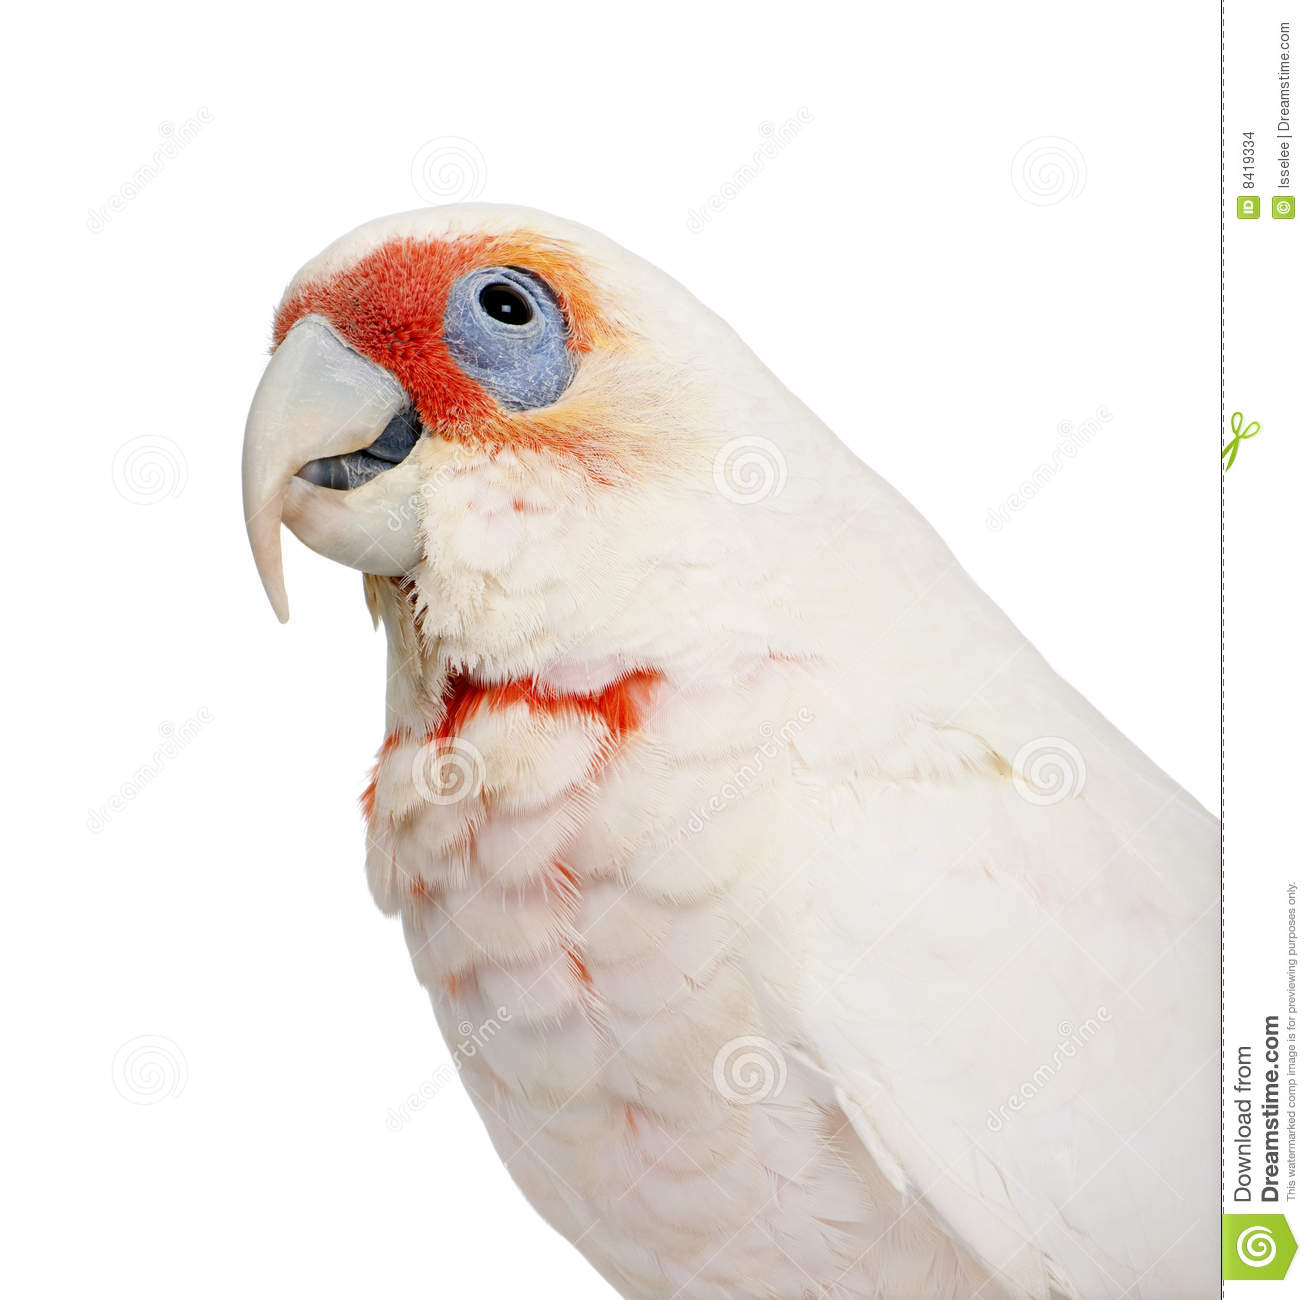 Long-billed Corella clipart #16, Download drawings